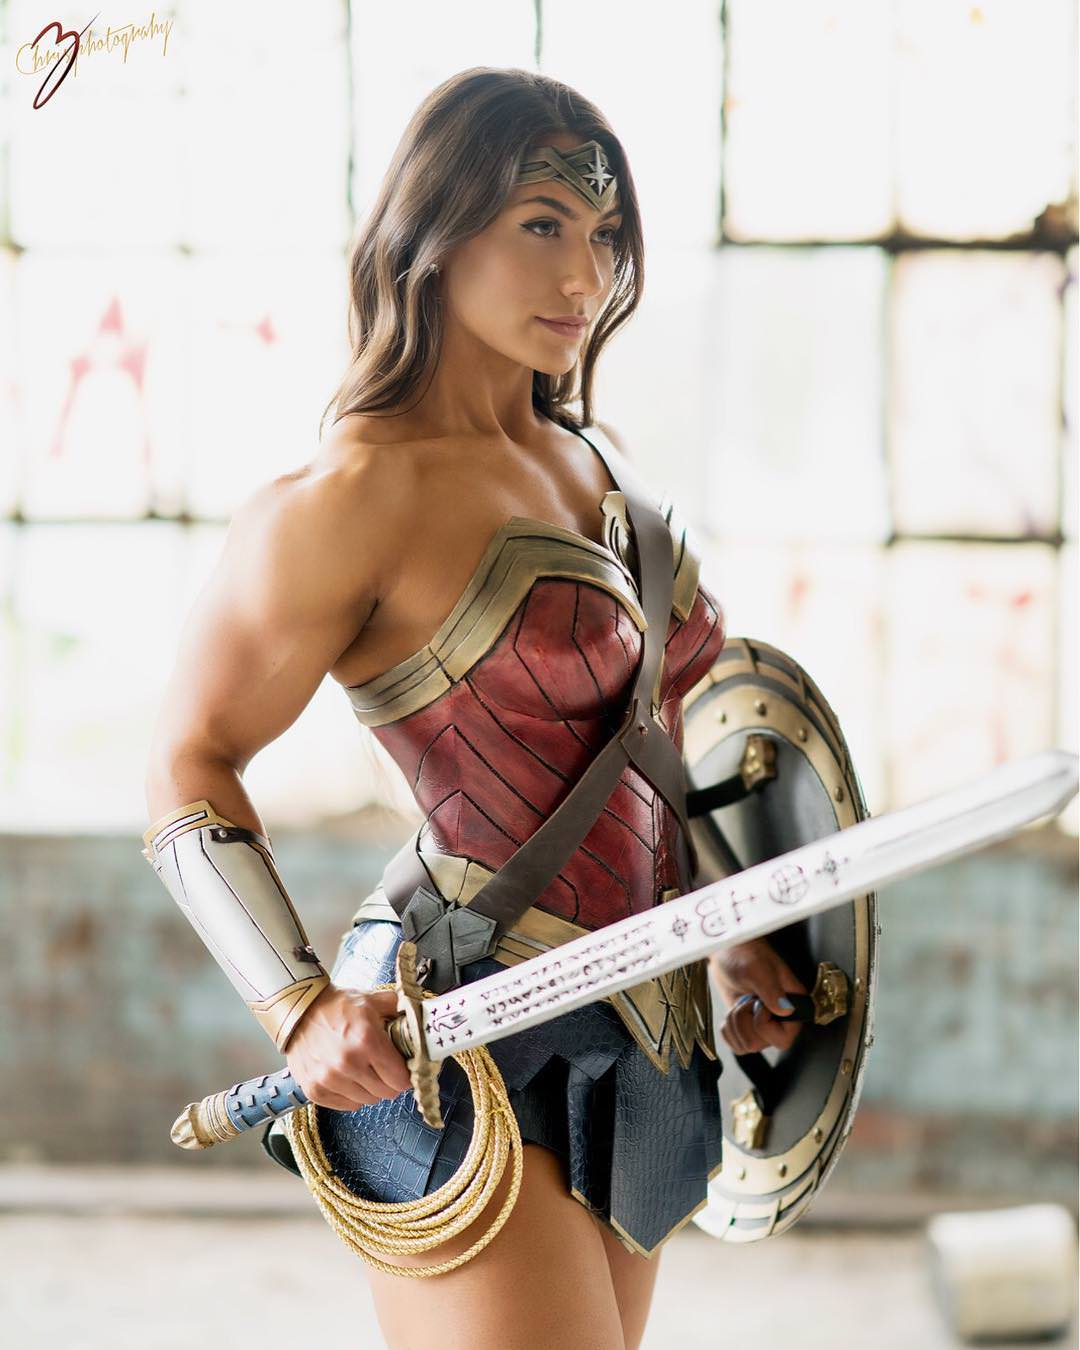 brigitte goudz sexy wonder woman cosplay 01